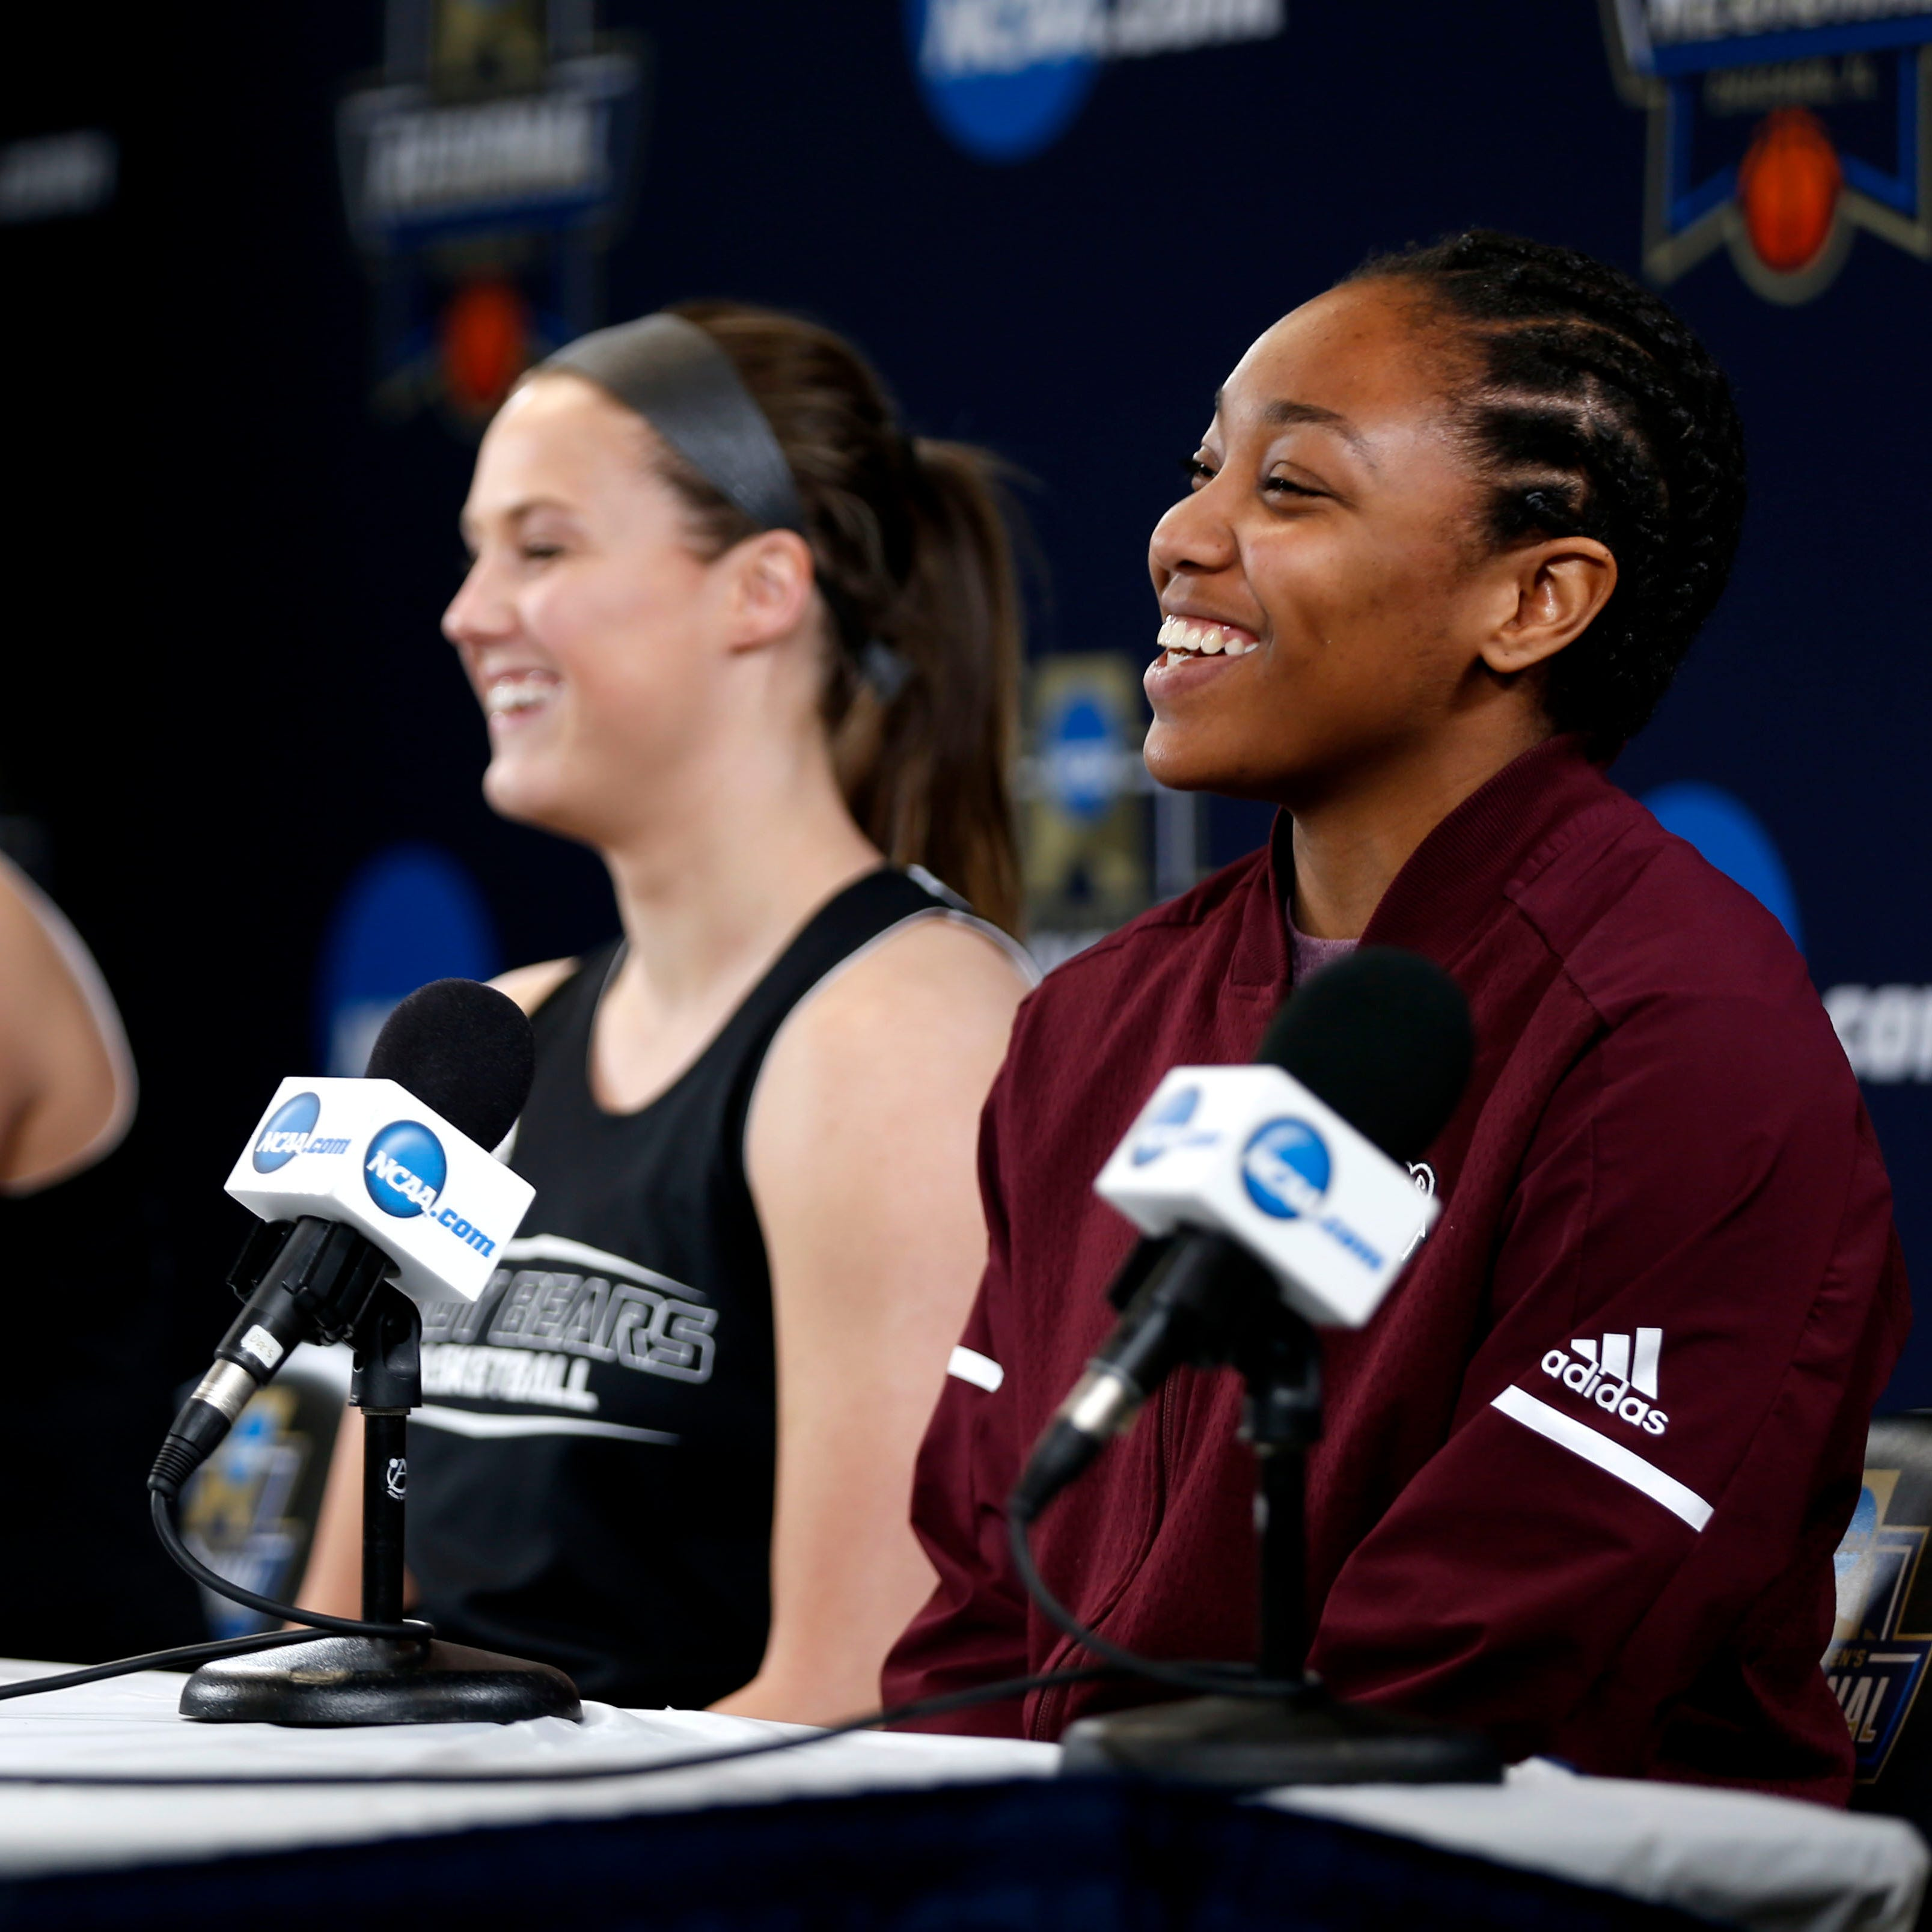 The MSU Lady Bears are this year's Cinderella story, but they don't feel like underdogs